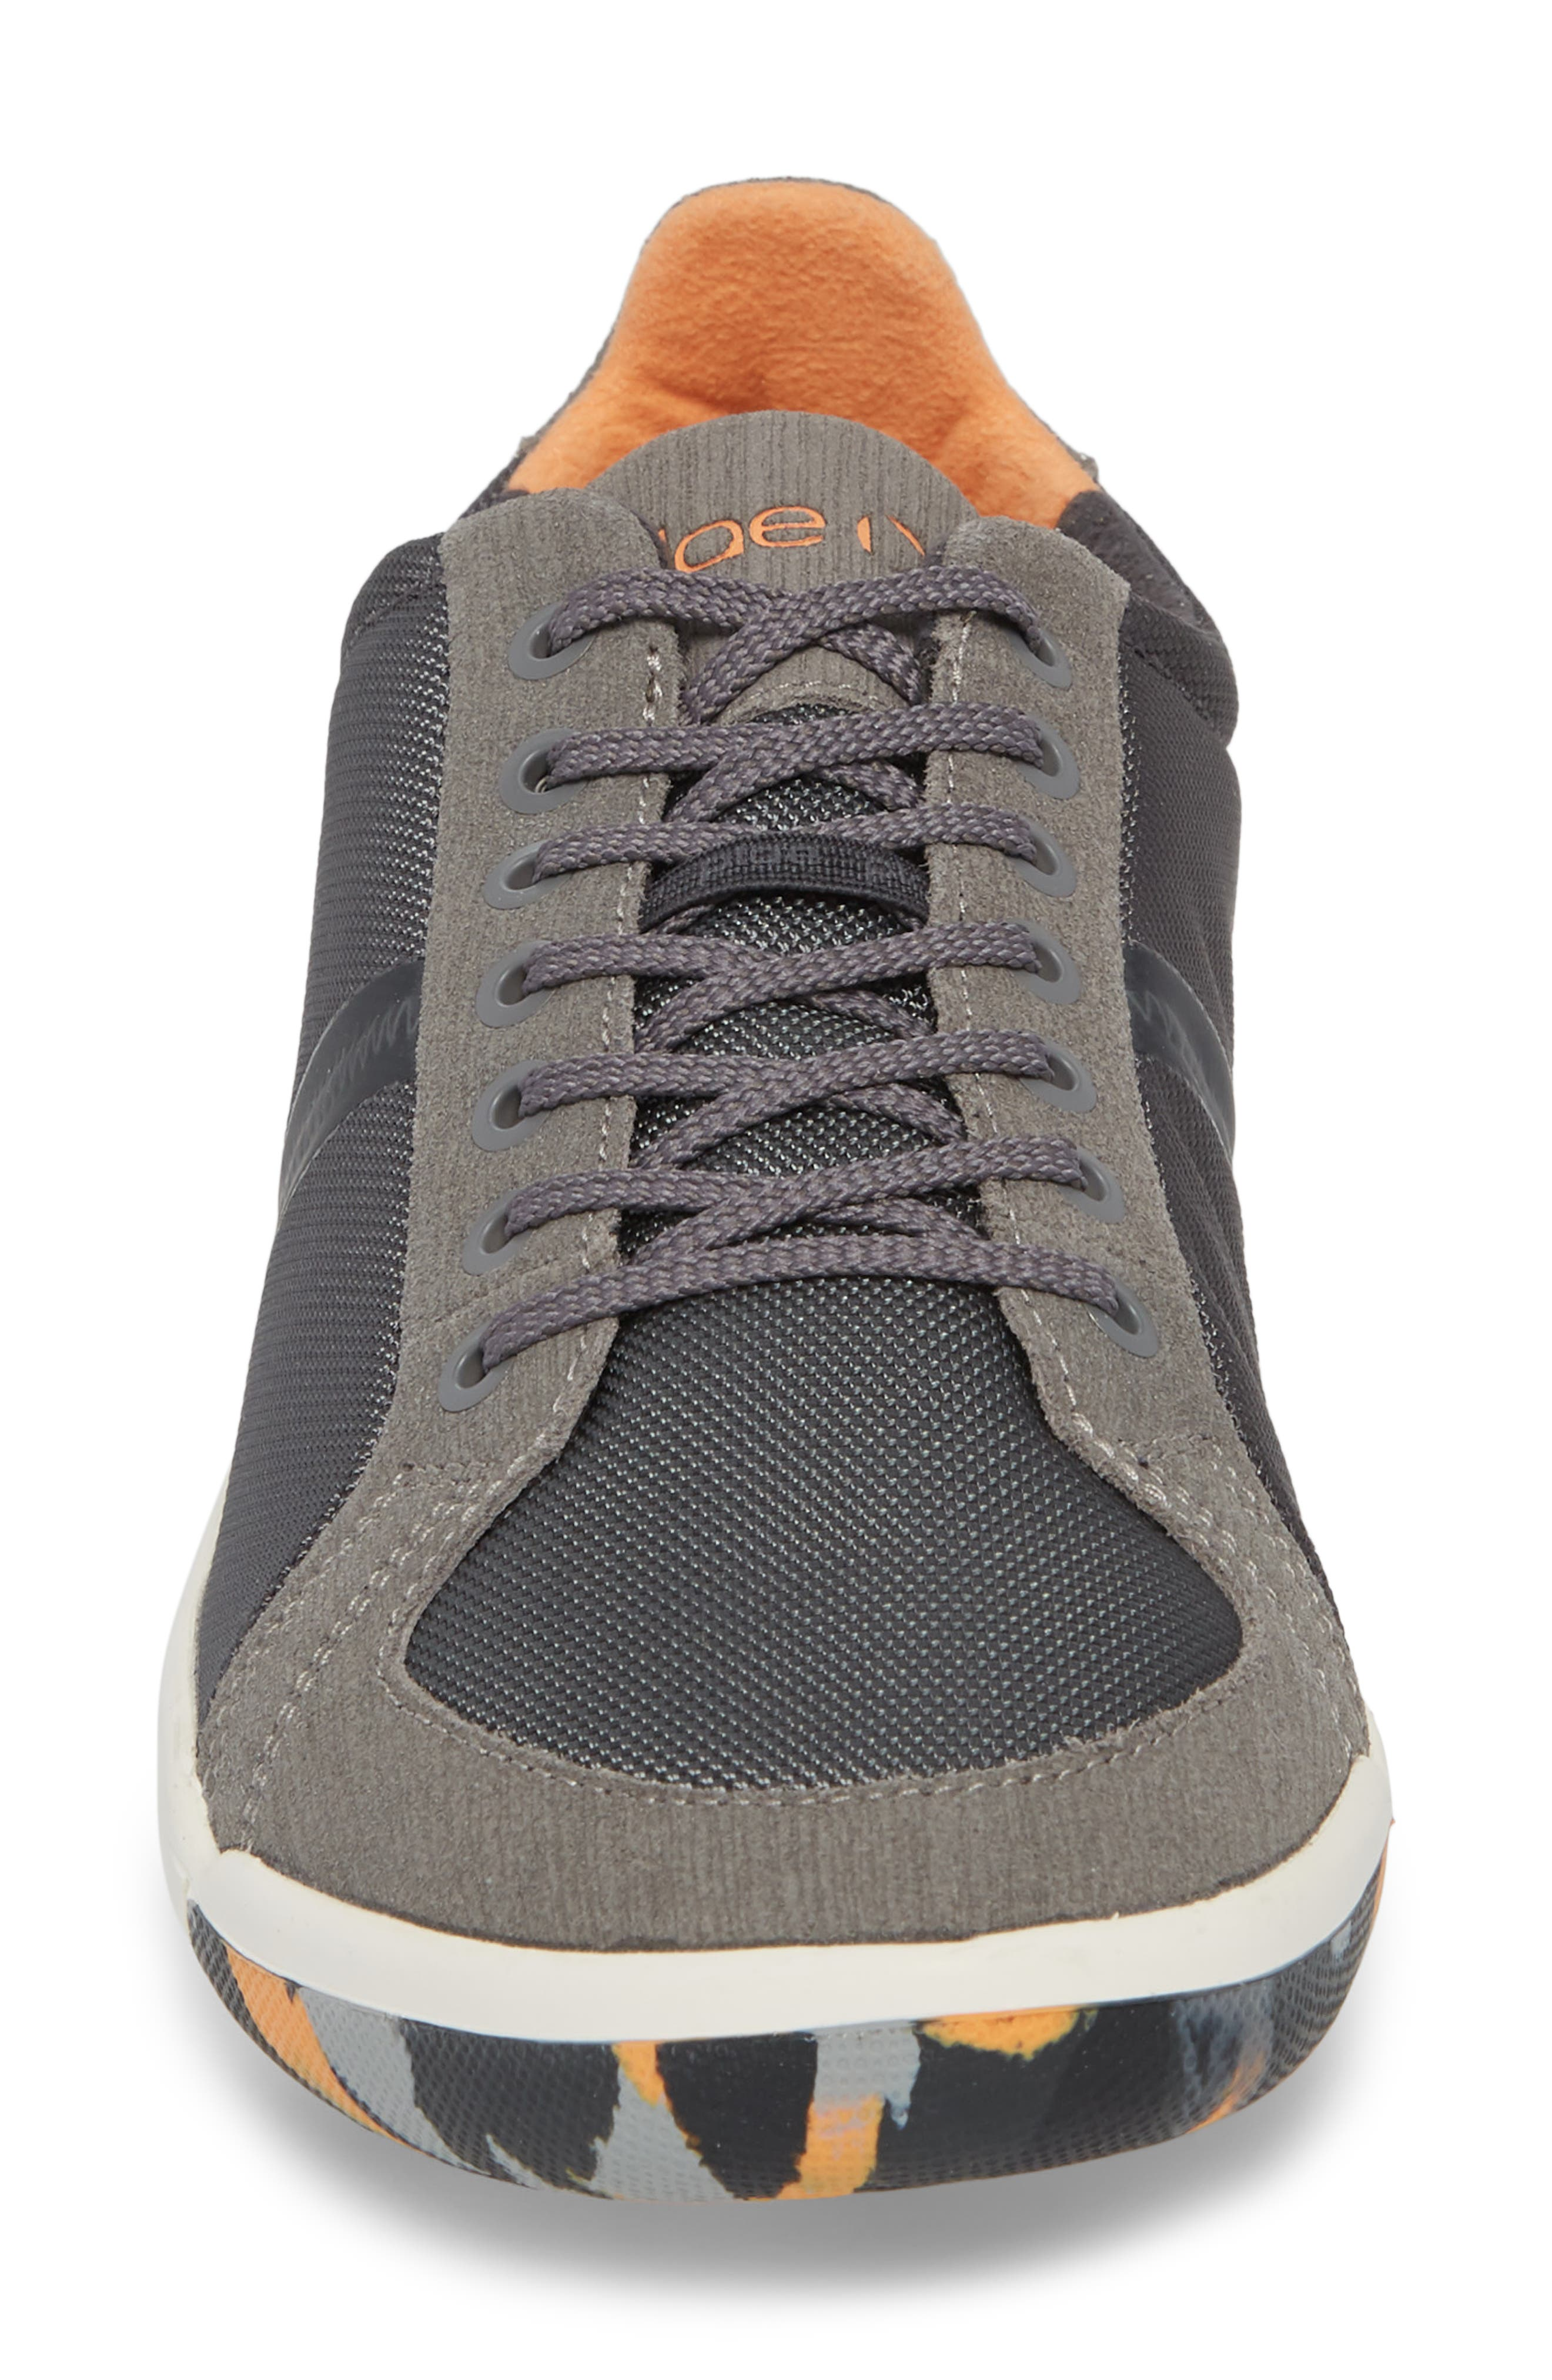 Prospect Low Top Sneaker,                             Alternate thumbnail 4, color,                             HYPERSPACE